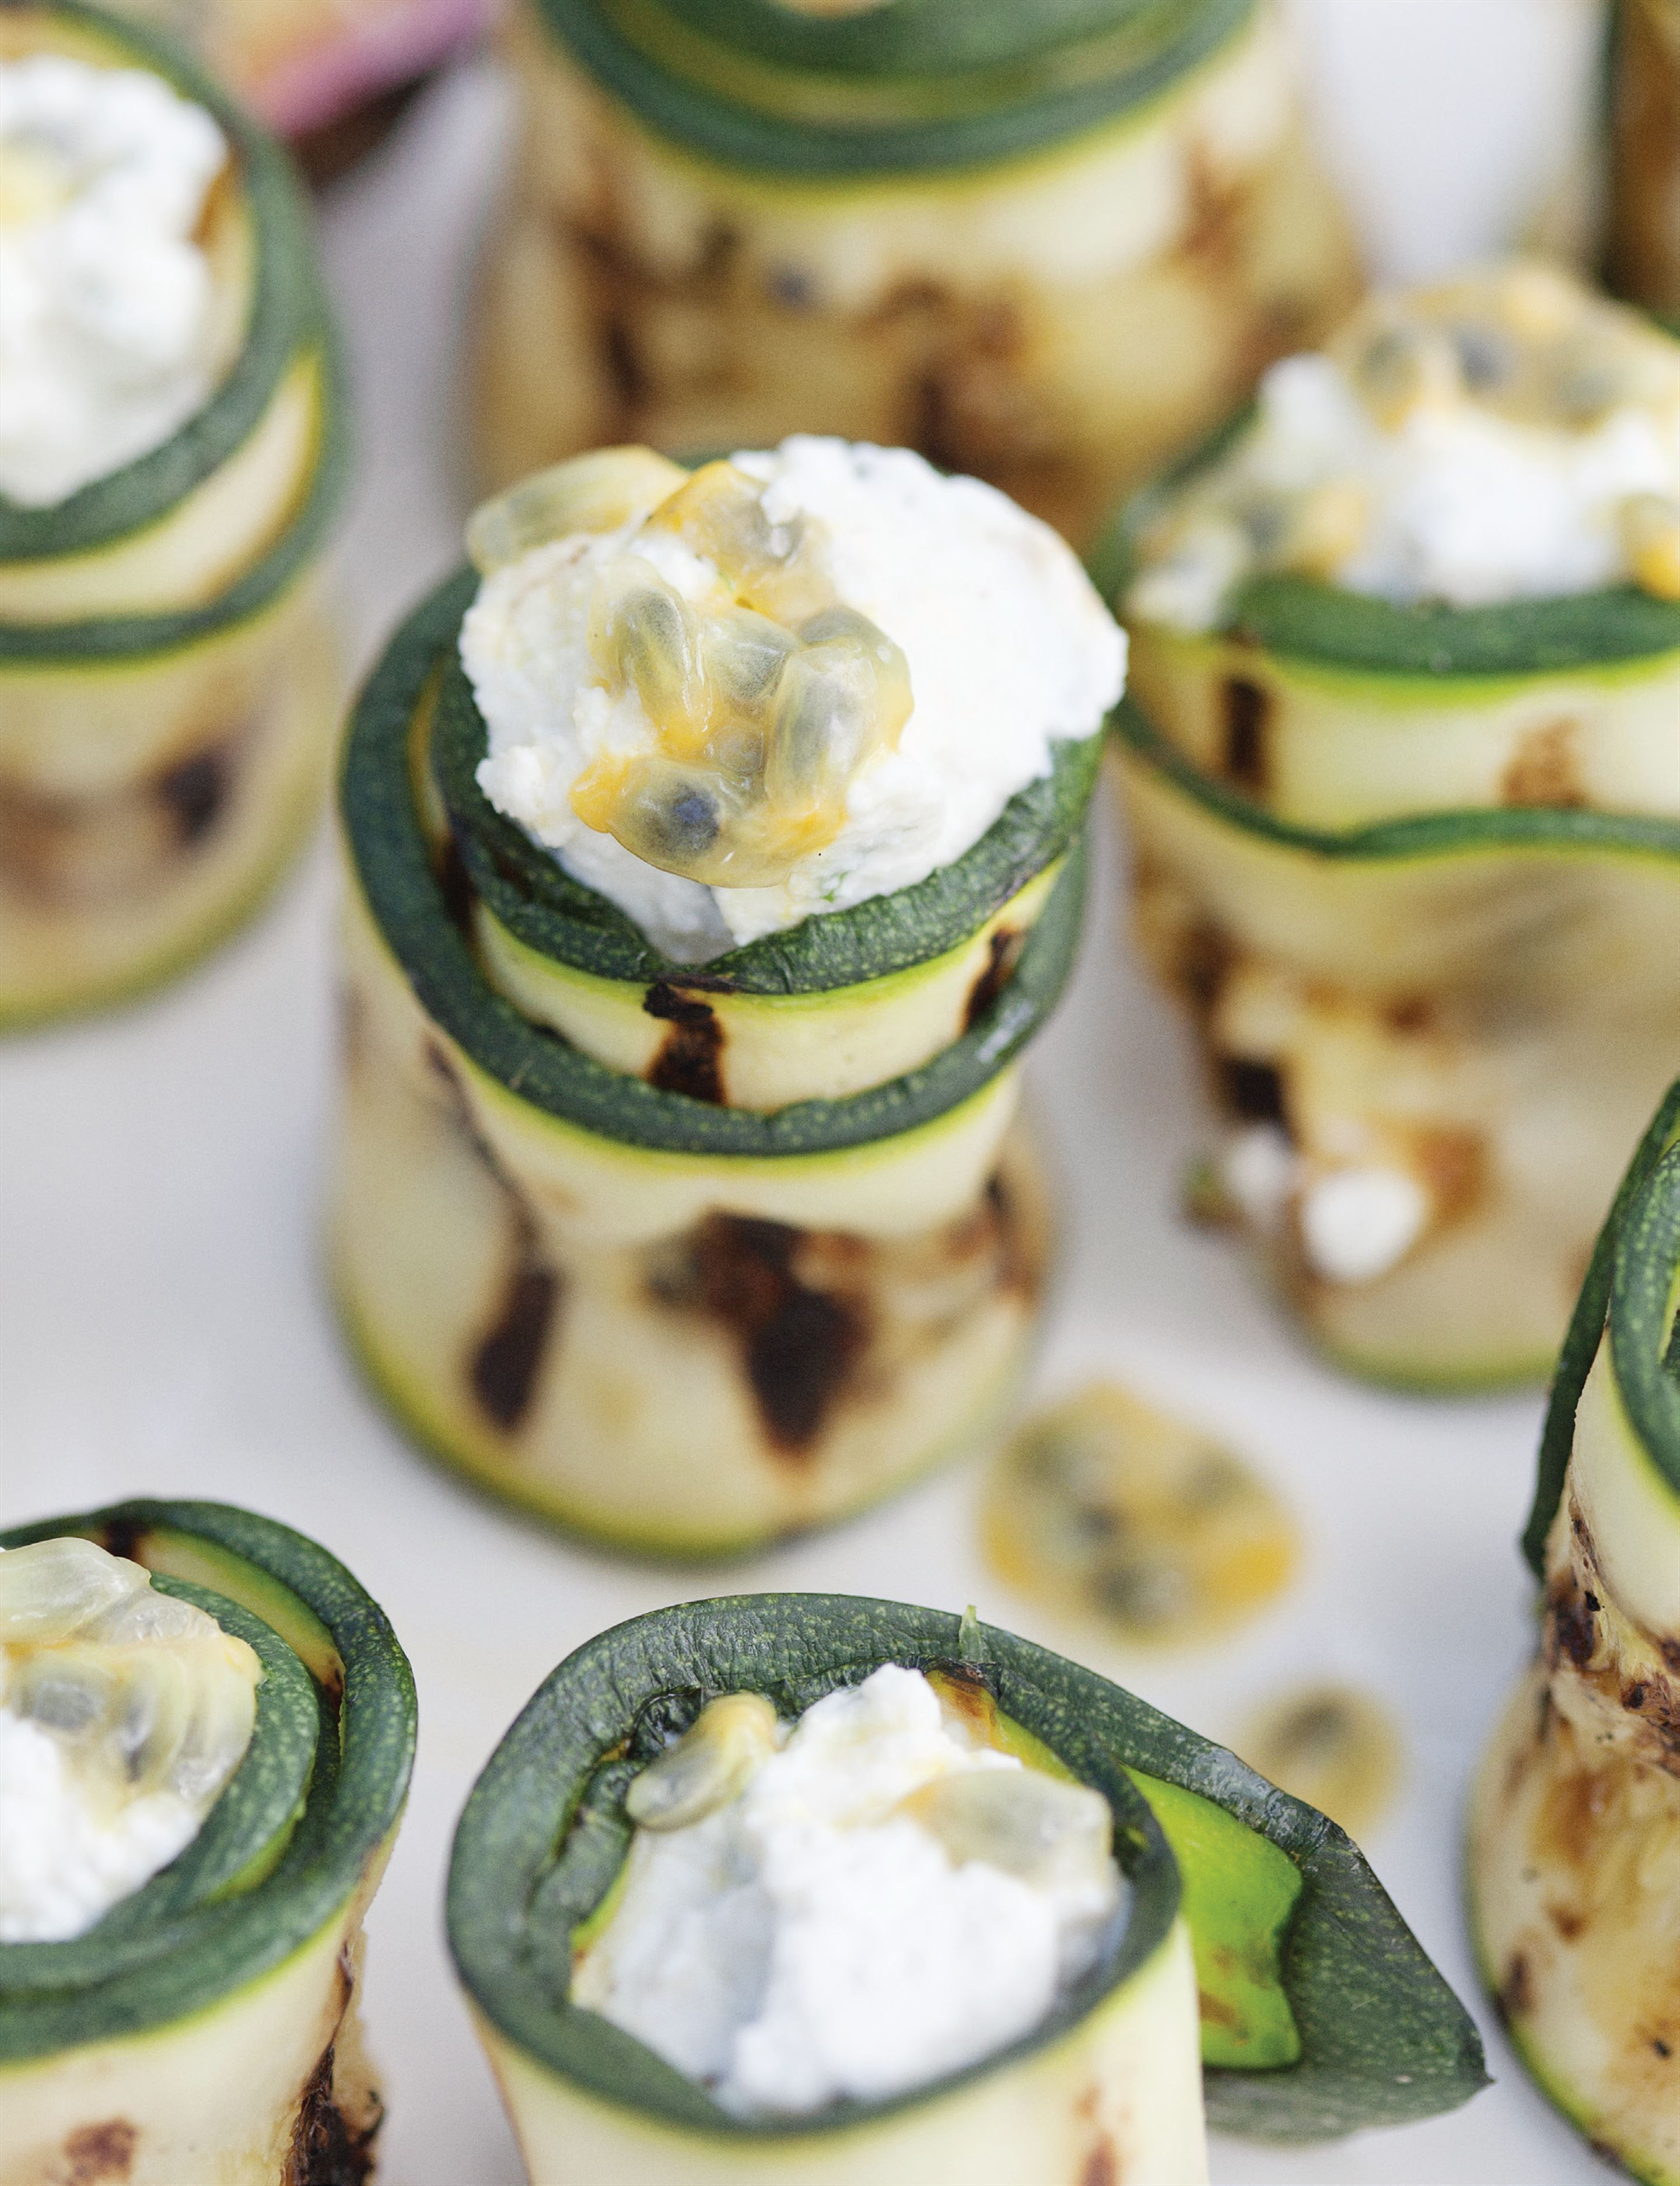 Courgette rolls with passionfruit and lemon ricotta